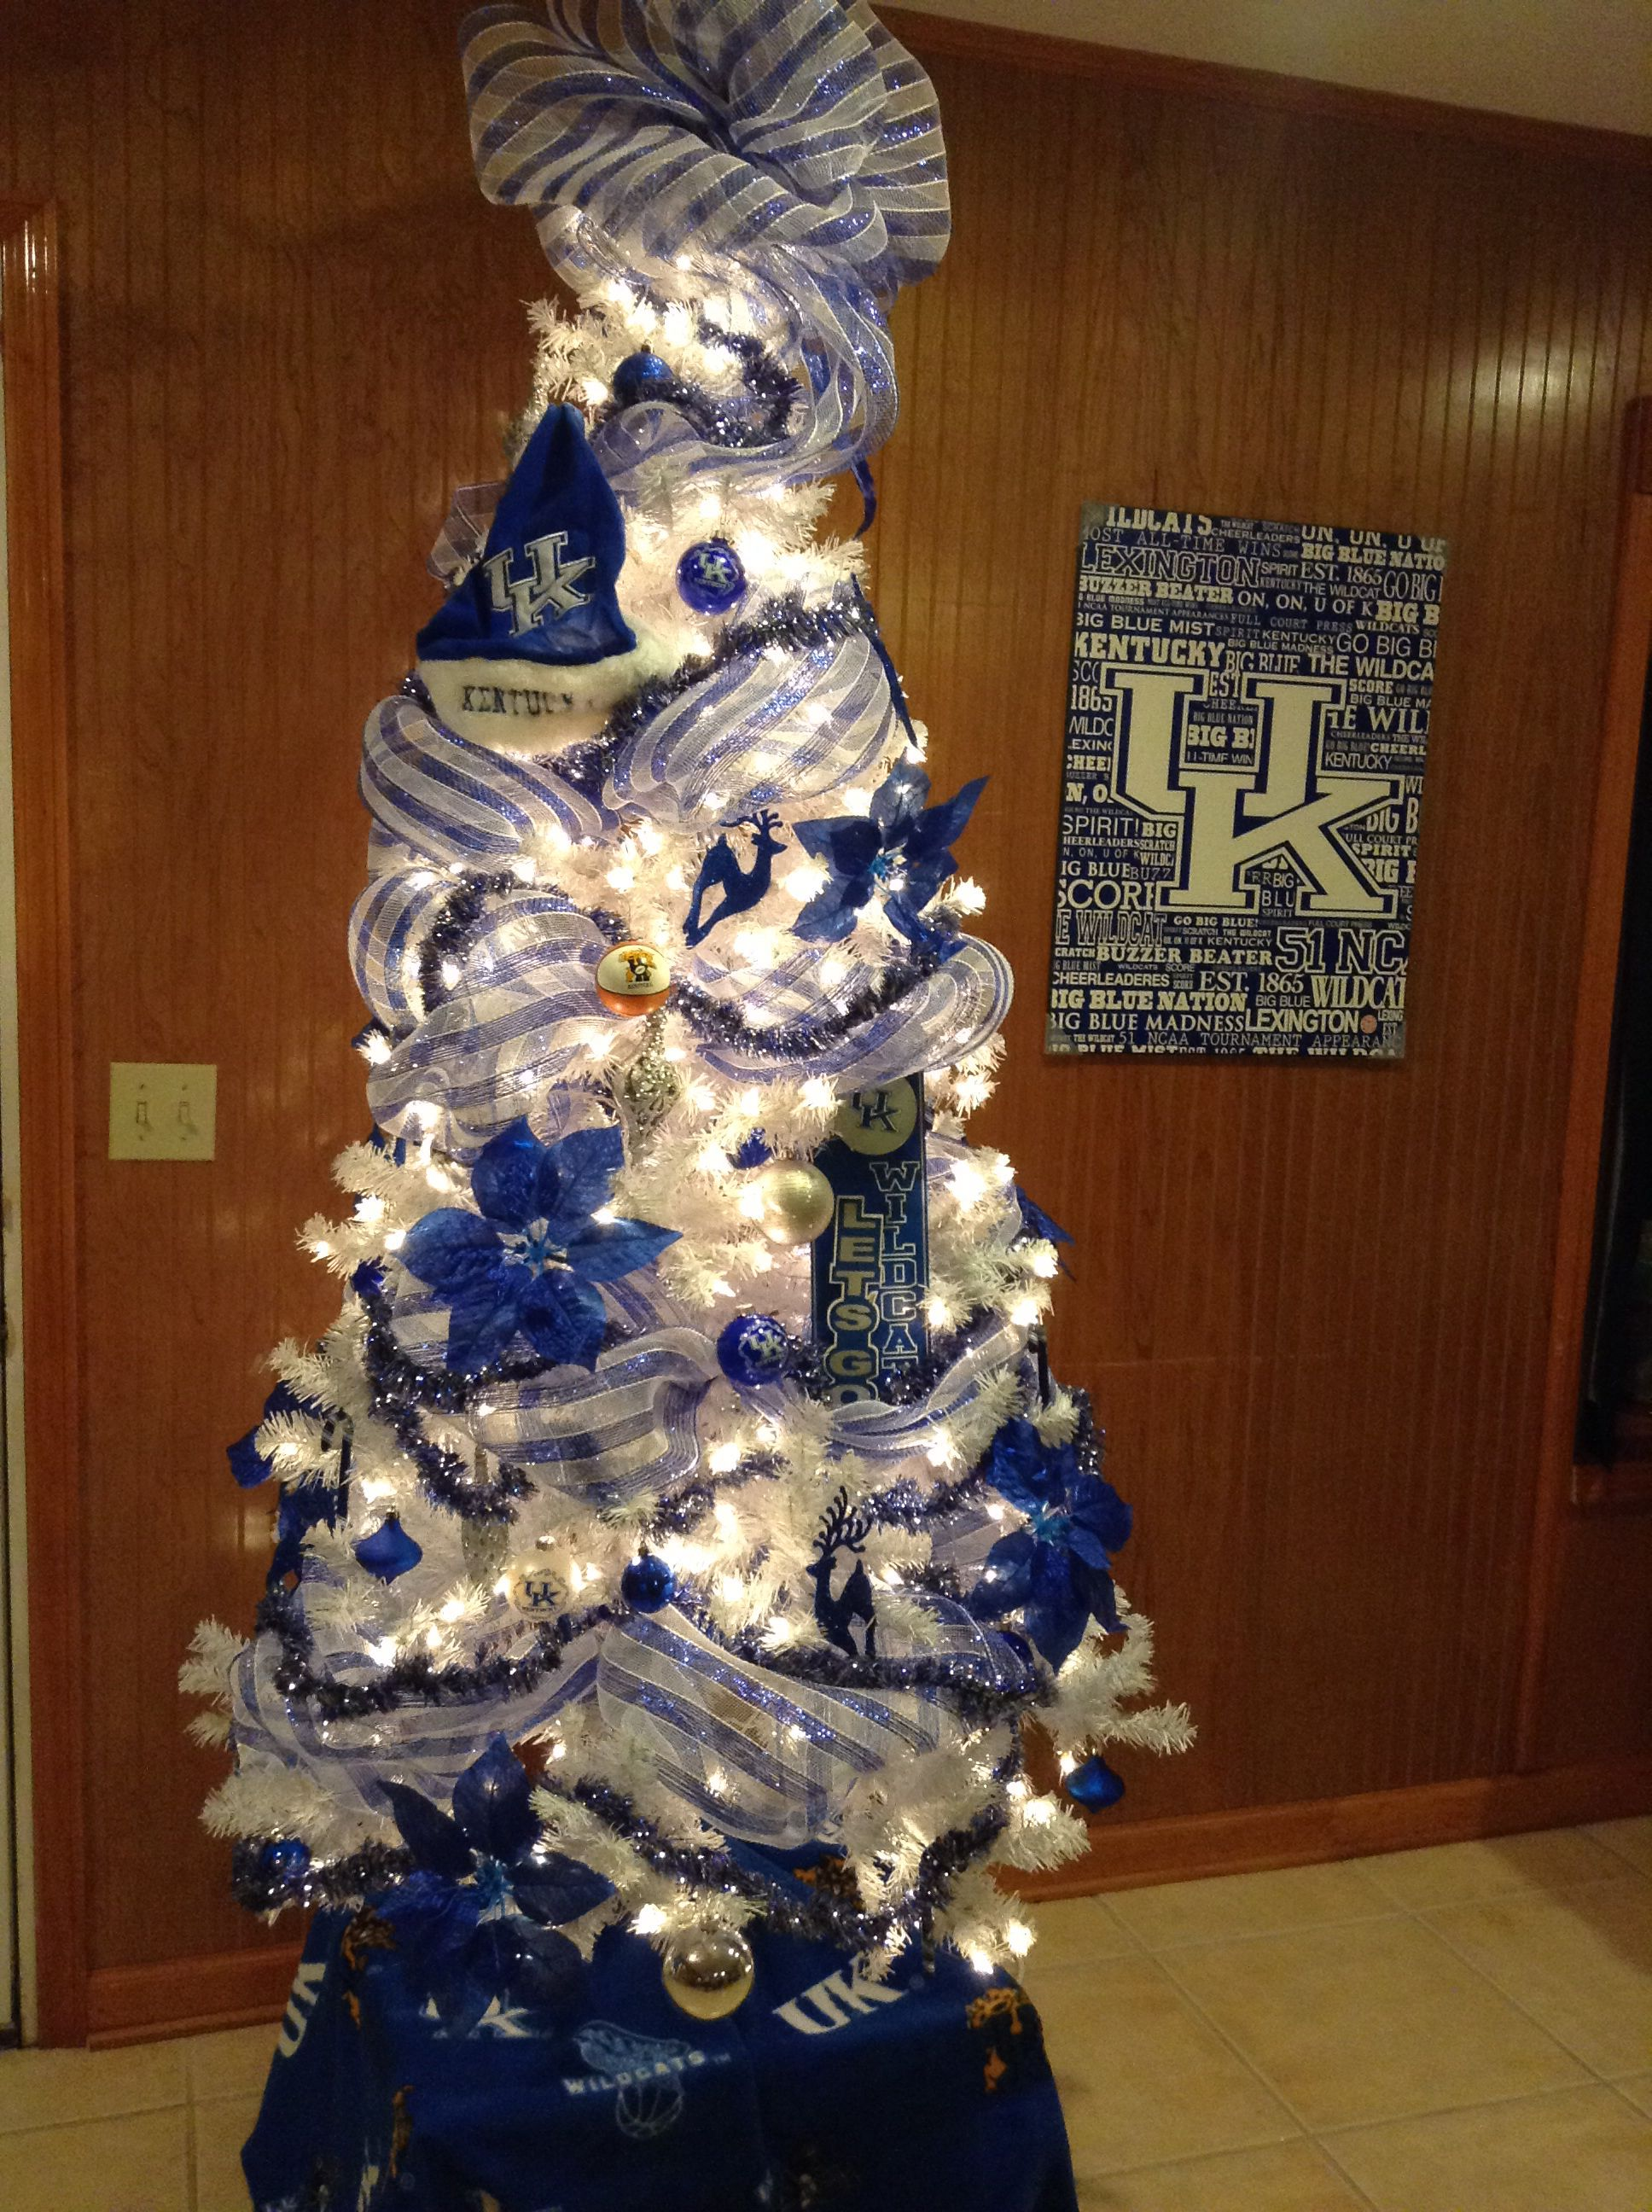 UK Wildcats Christmas tree I so need this Lol